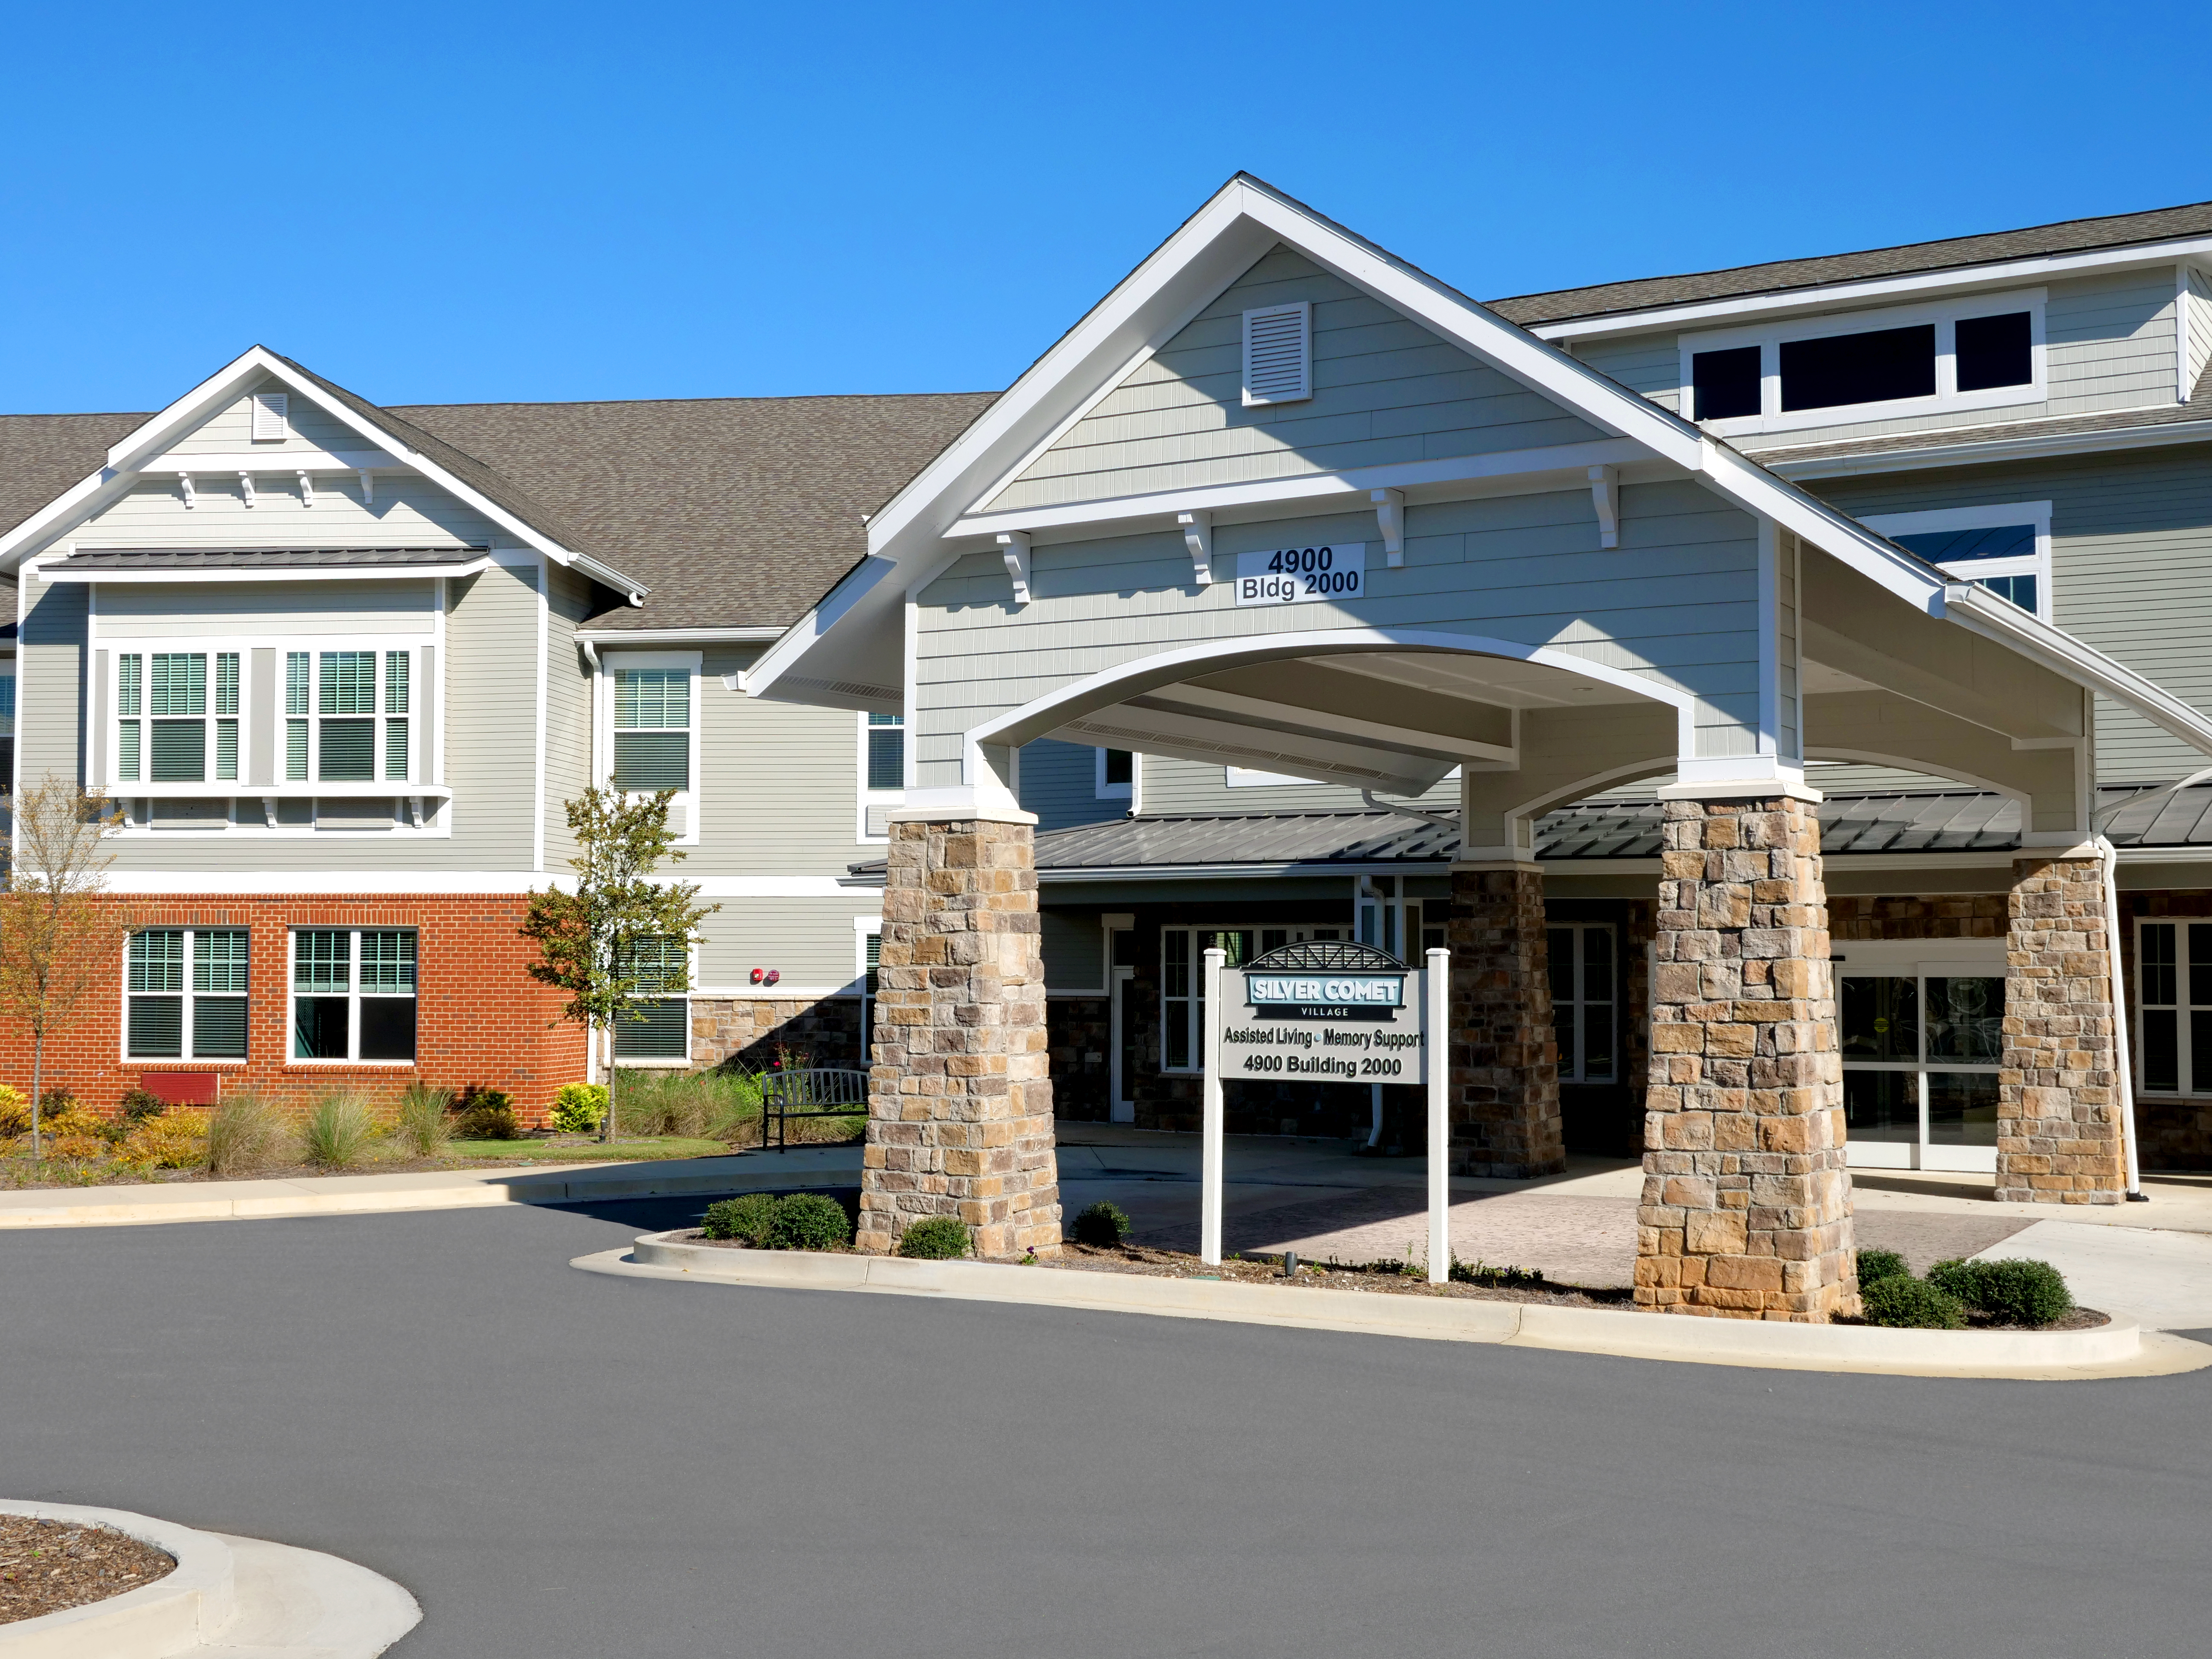 Assisted Living and Memory Support Building